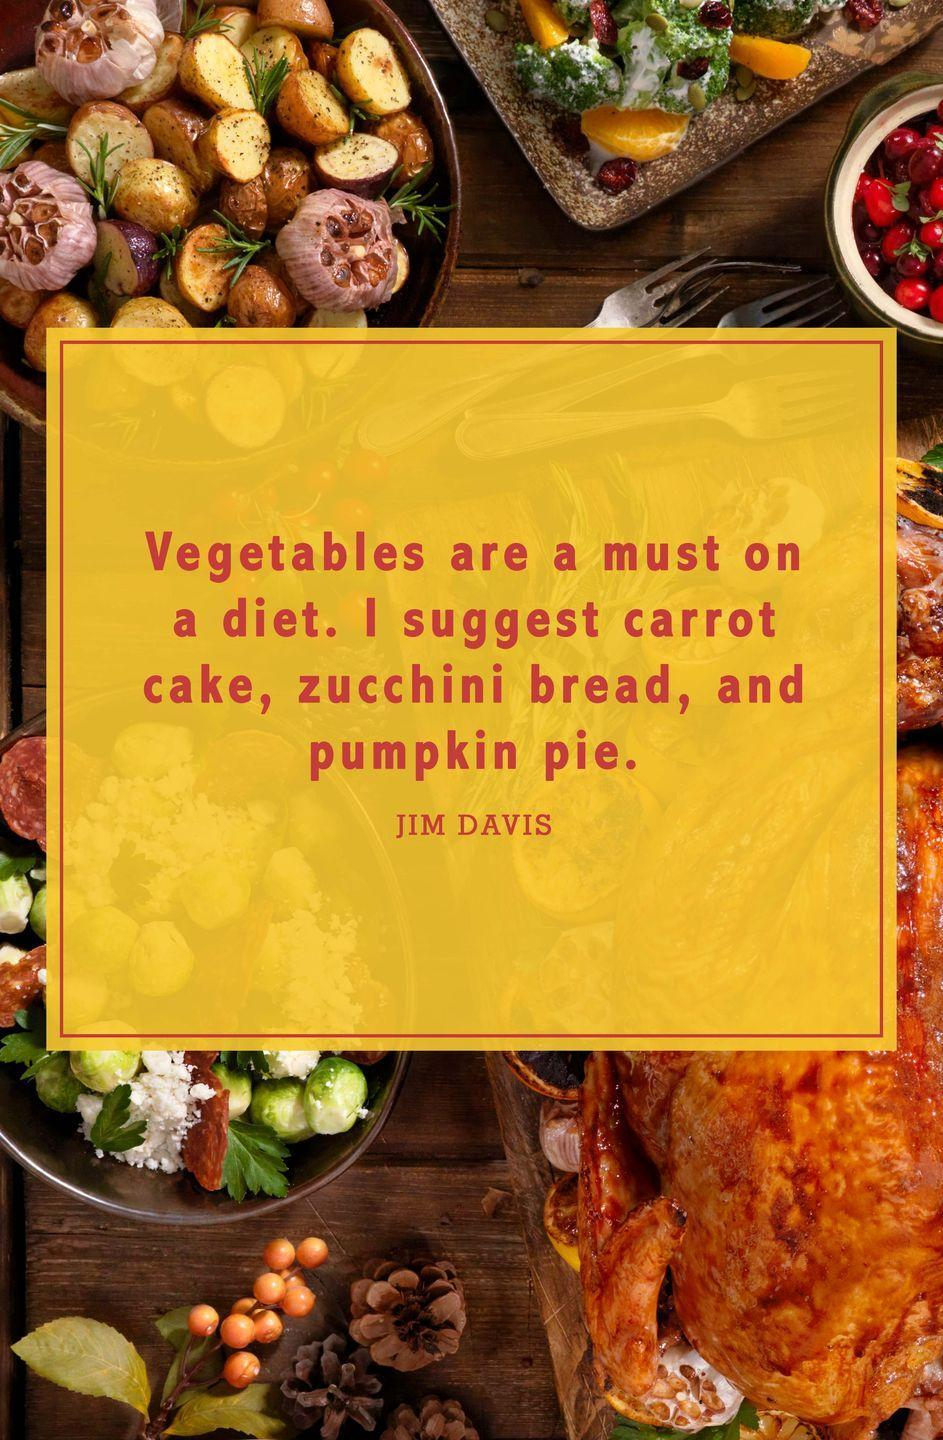 "<p>""Vegetables are a must on a diet. I suggest carrot cake, zucchini bread, and pumpkin pie.""</p>"